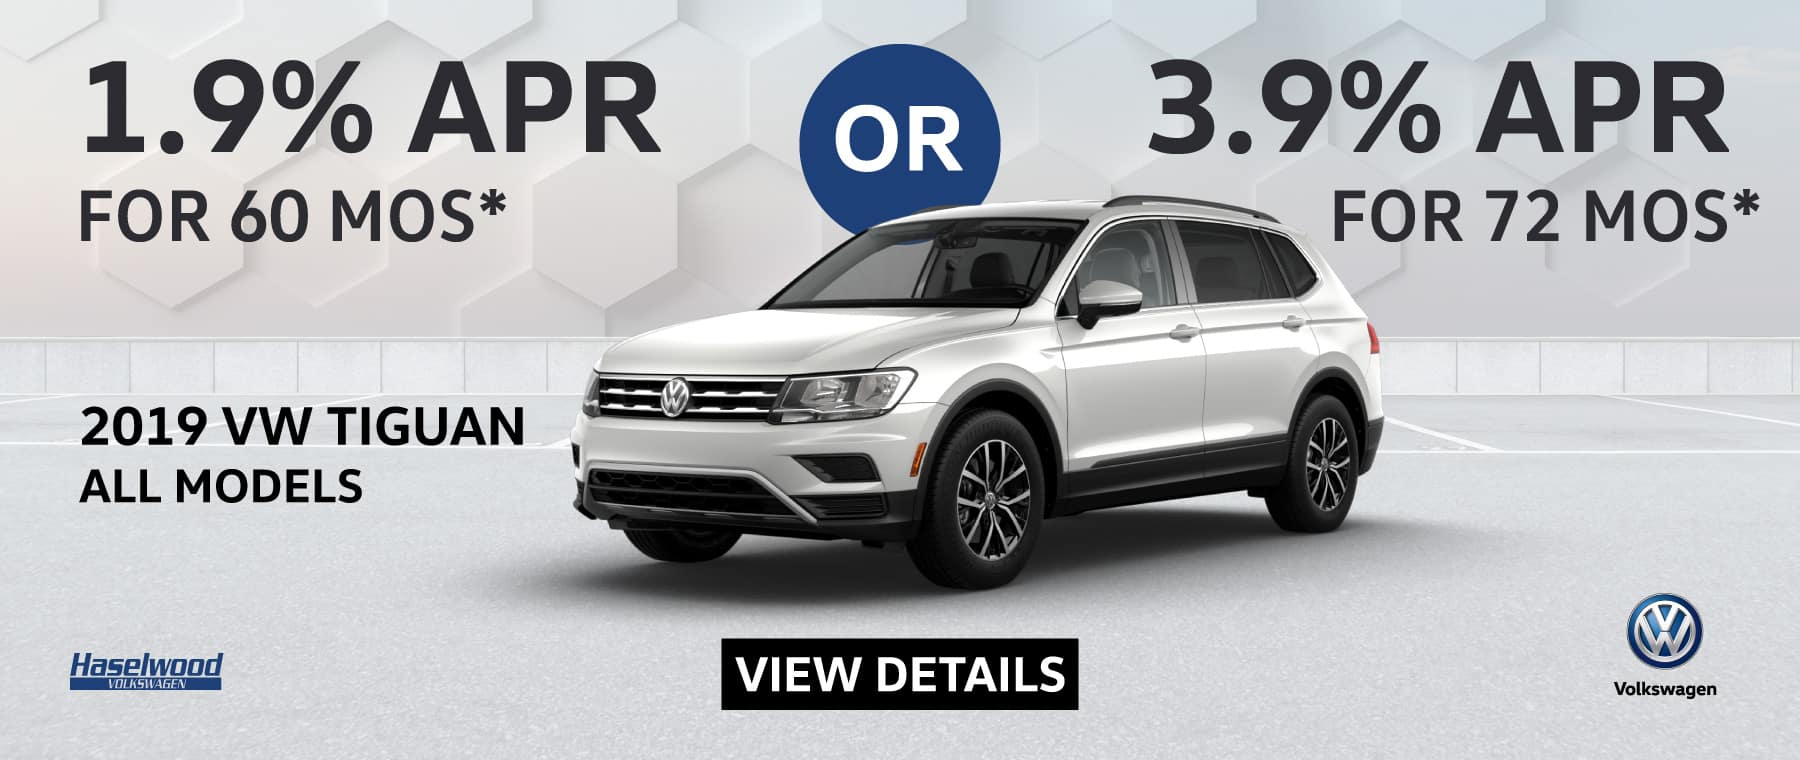 2019 Tiguan All Models (Featured Vehicle)  1.9% APR for 60 mos.  Or 3.9% APR for 72 mos.